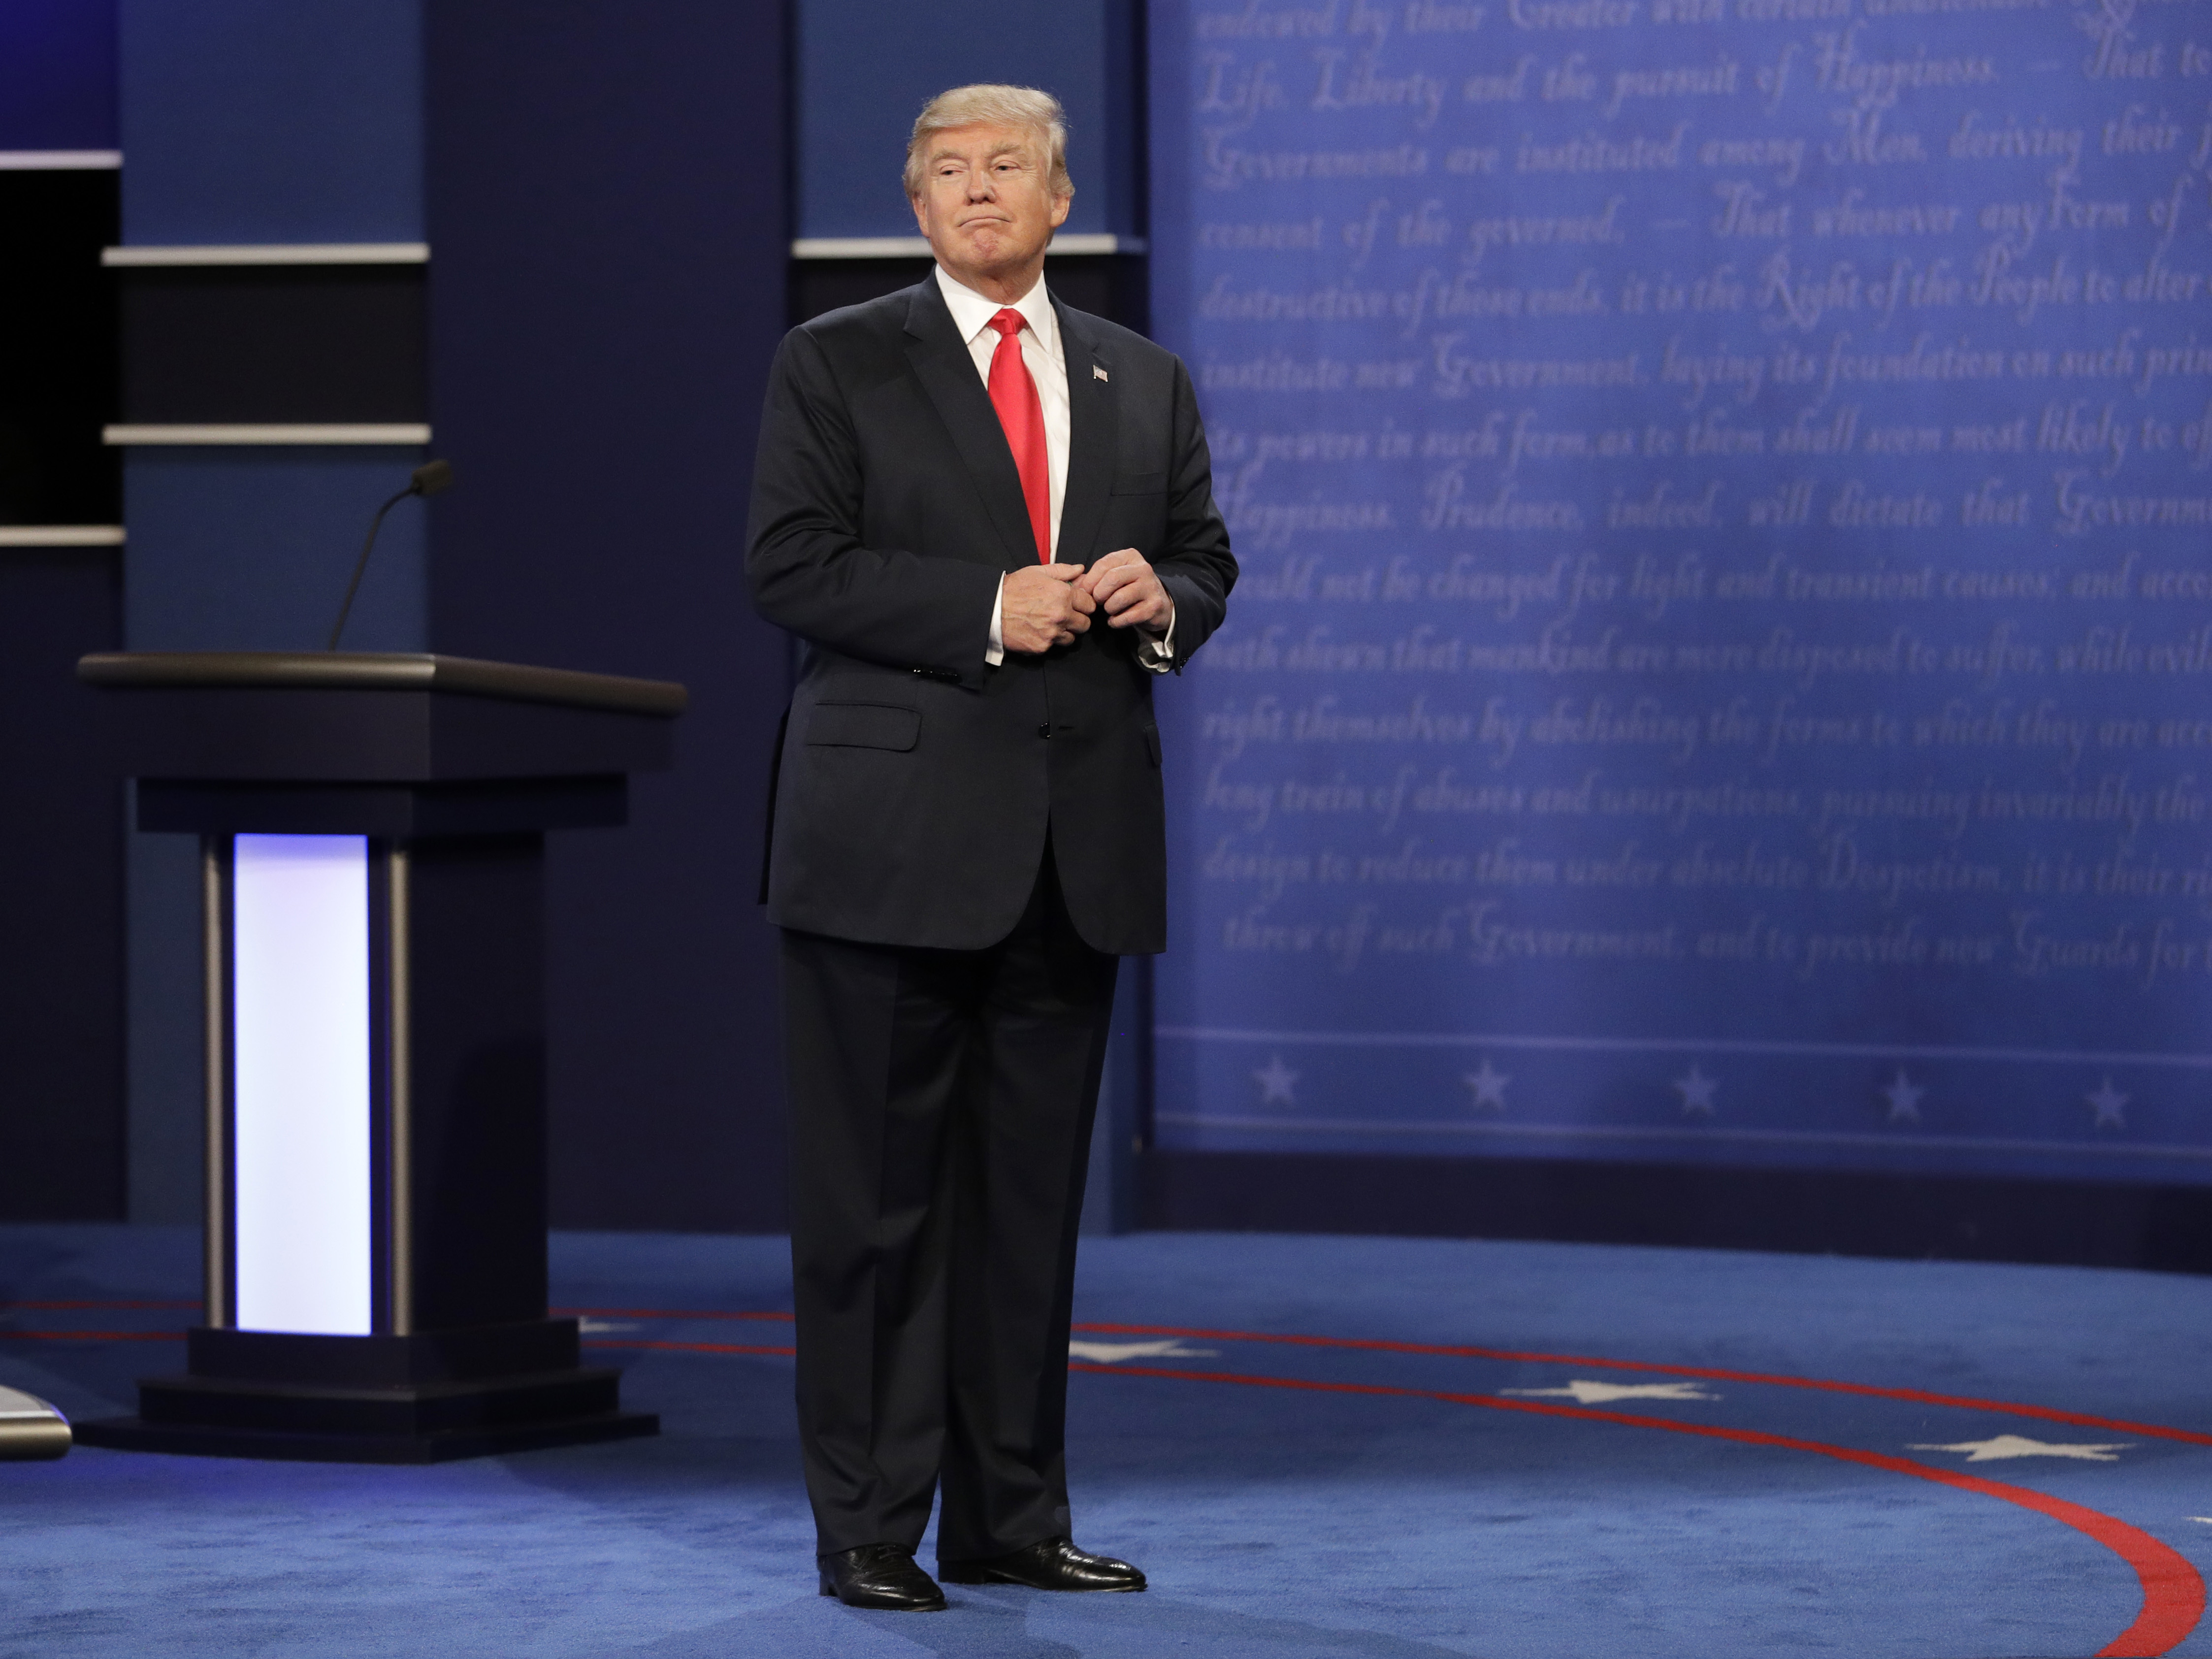 Fact-Checking Trump's Statements On 'Partial-Birth' Abortion